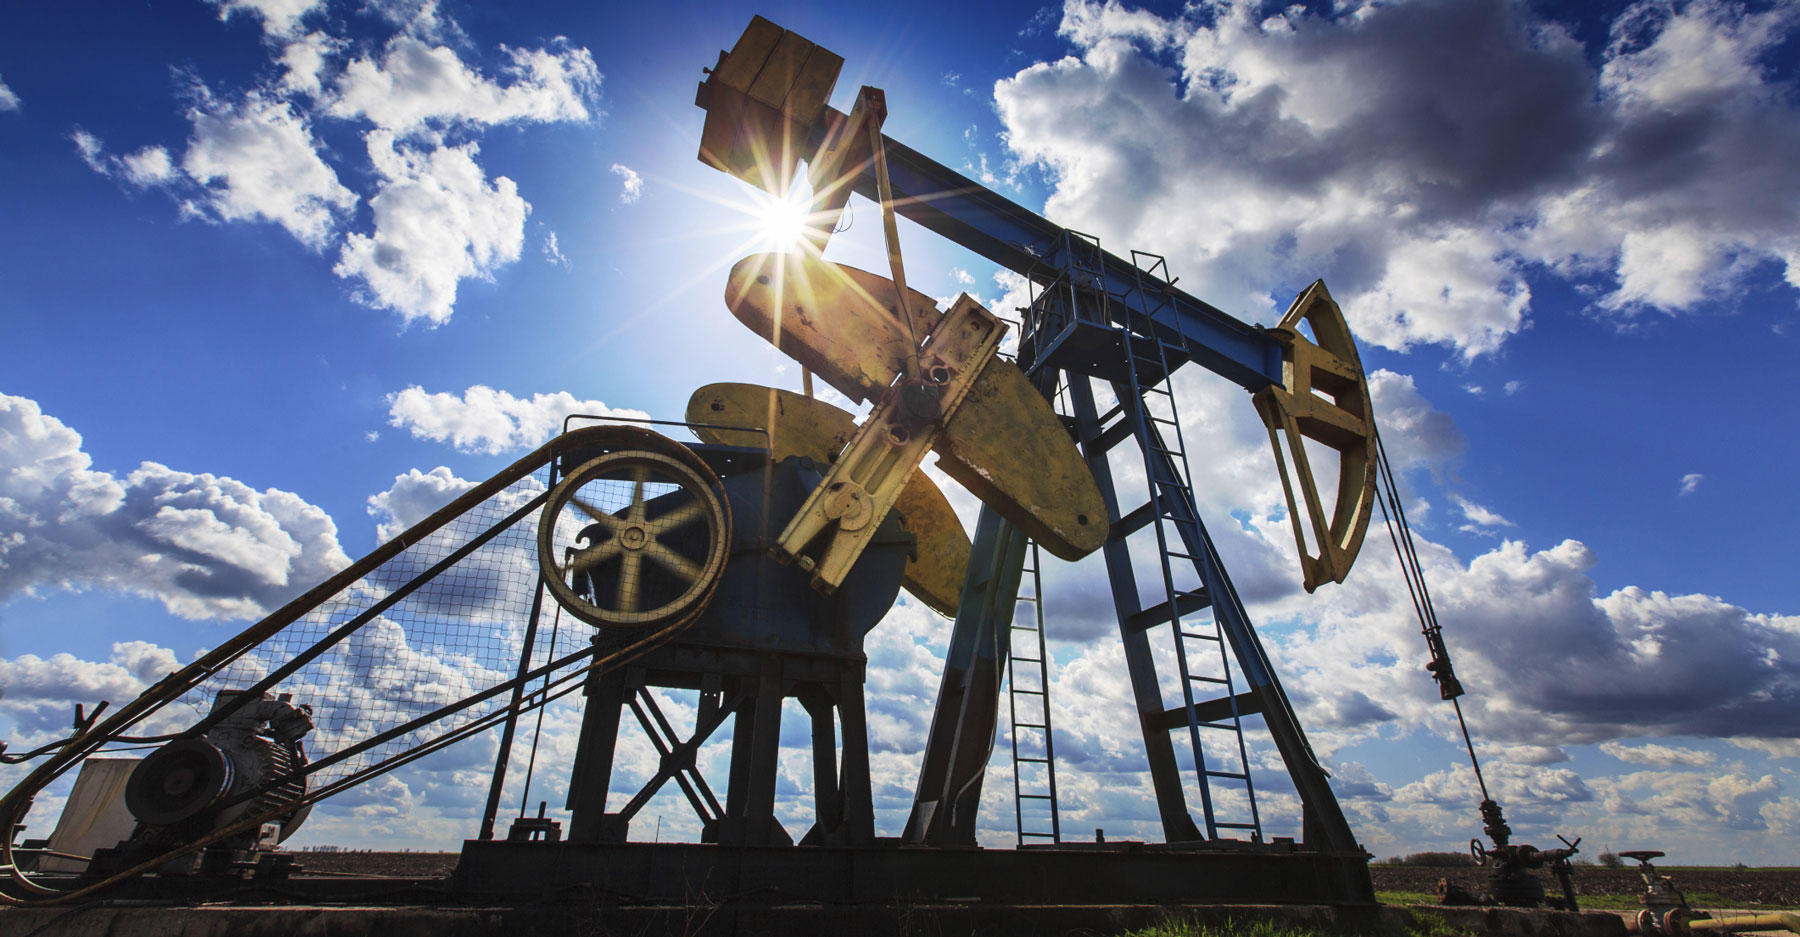 Operating oil and gas well profiled on cloudy sky